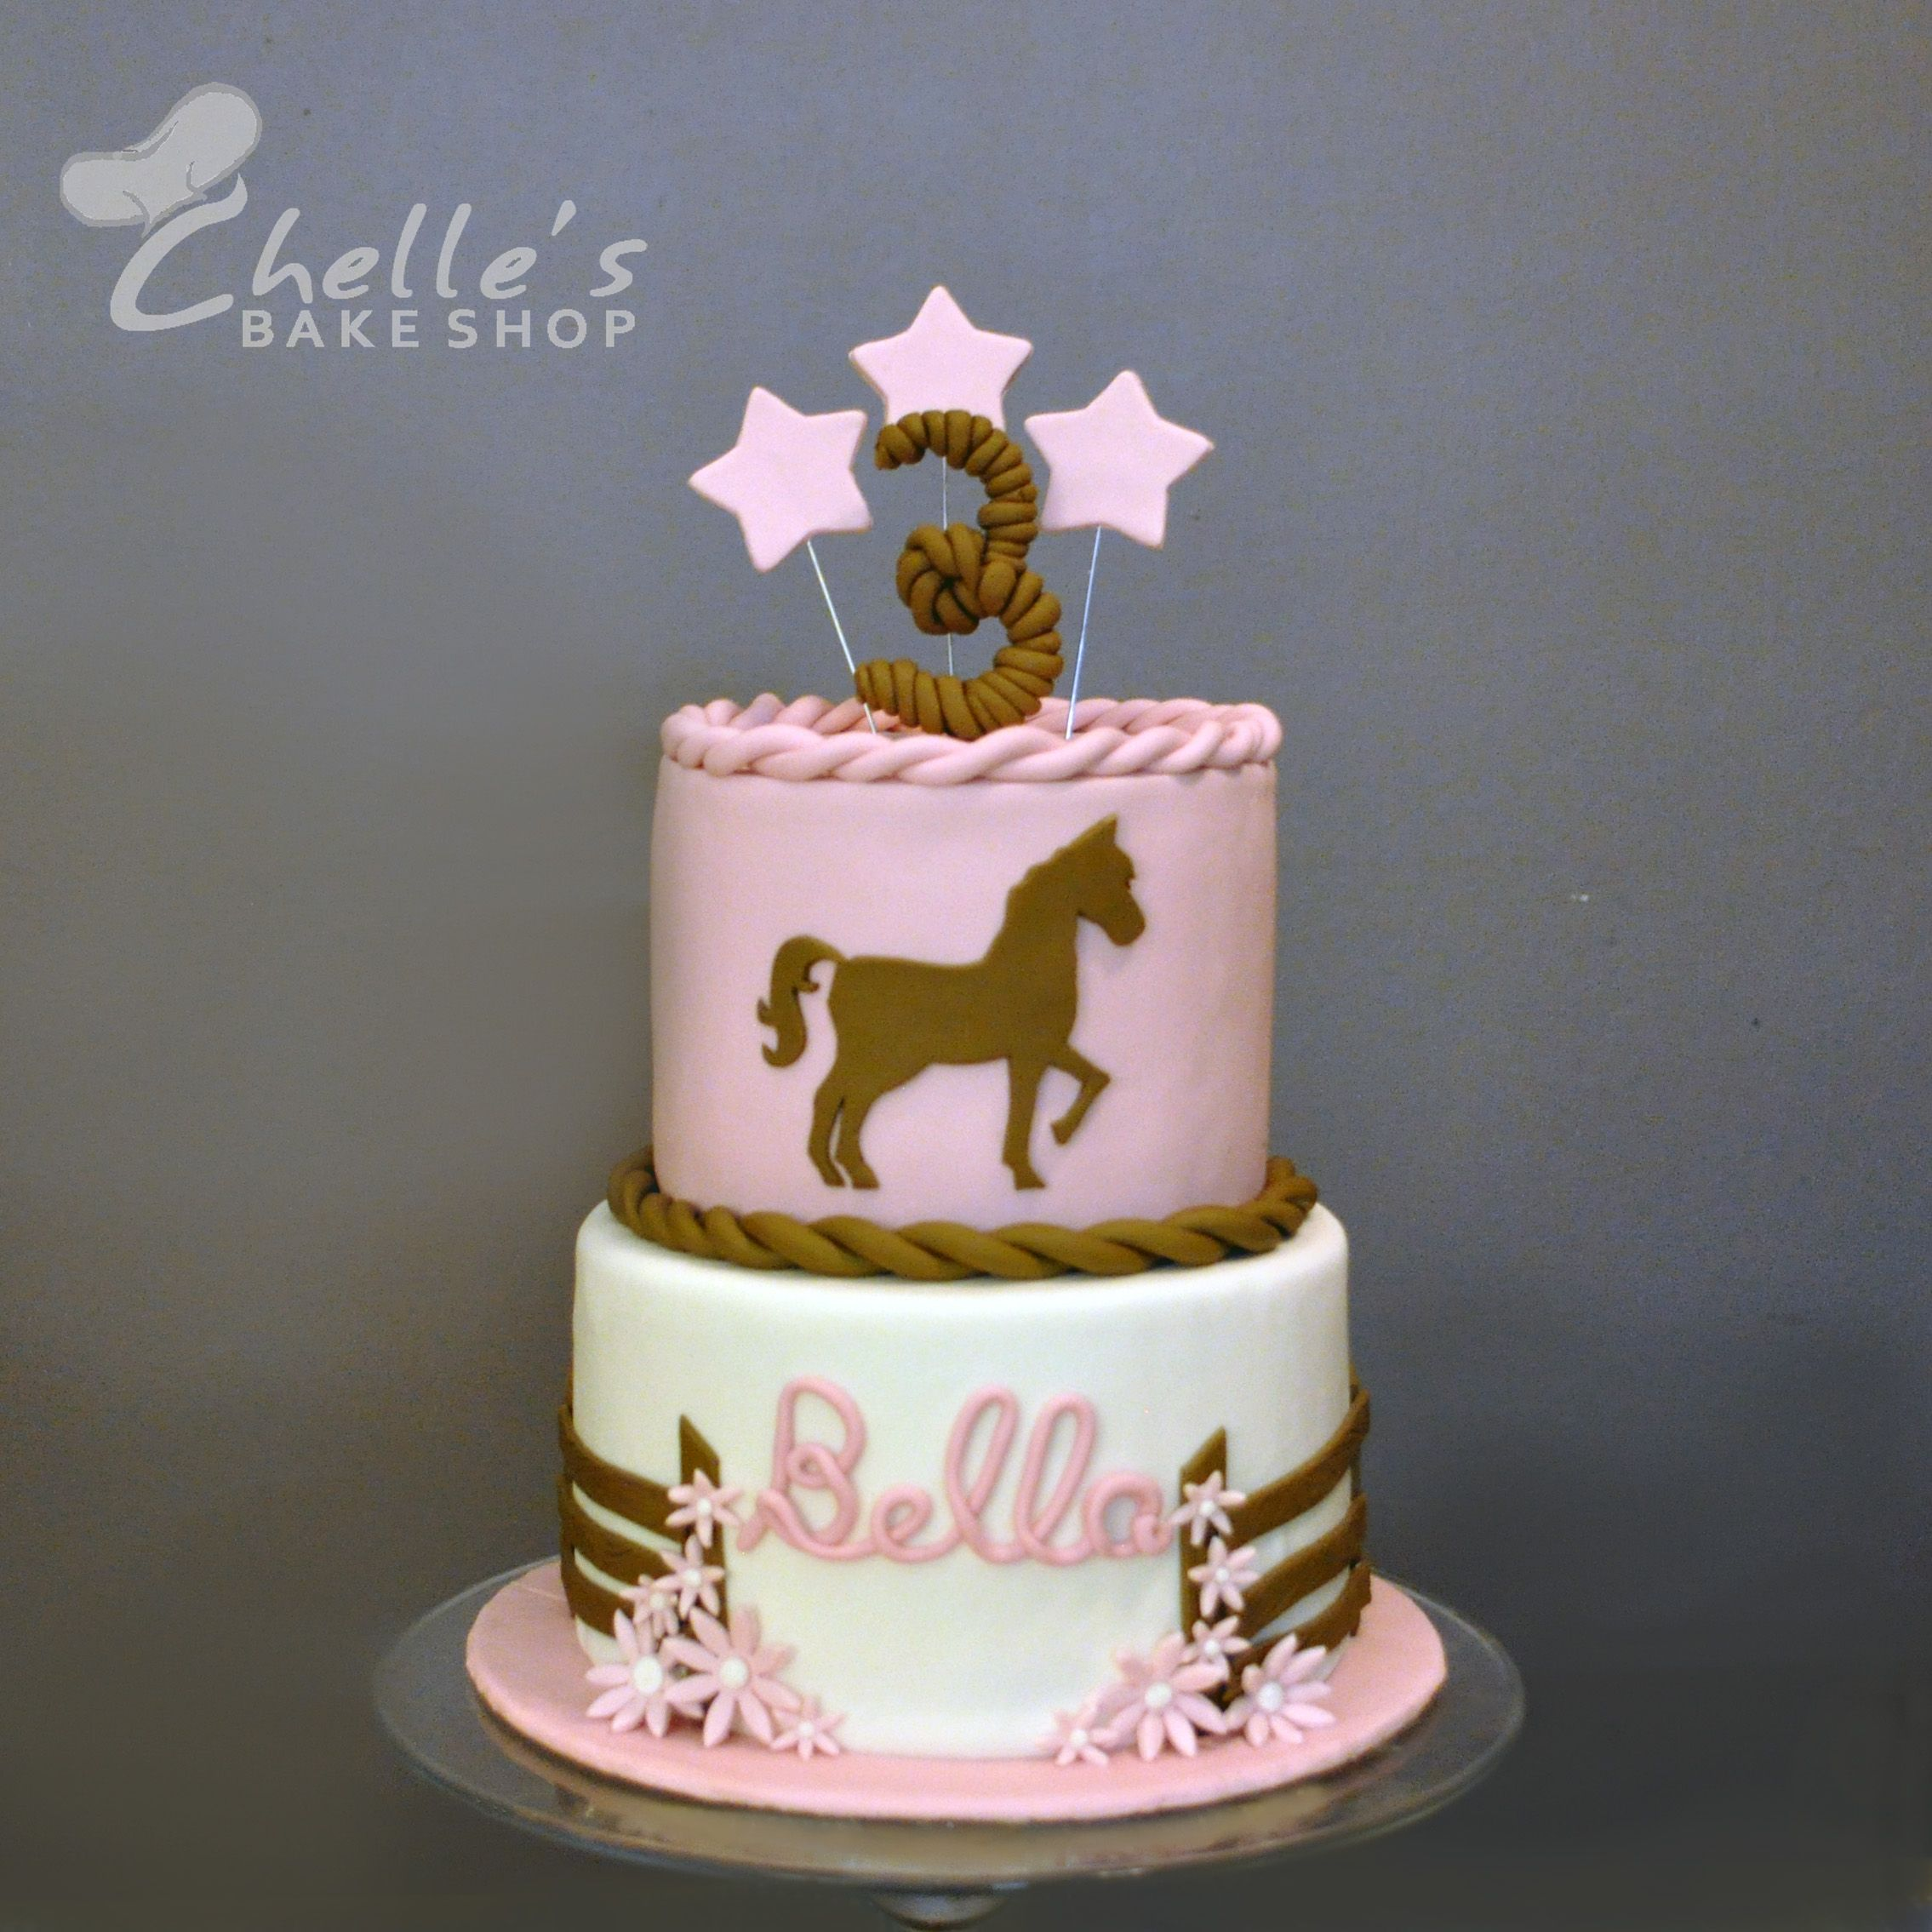 This Pink And Brown Horse Cake Was For A Little Girl Turning 3. The Horse Silhouette Was Cut Out